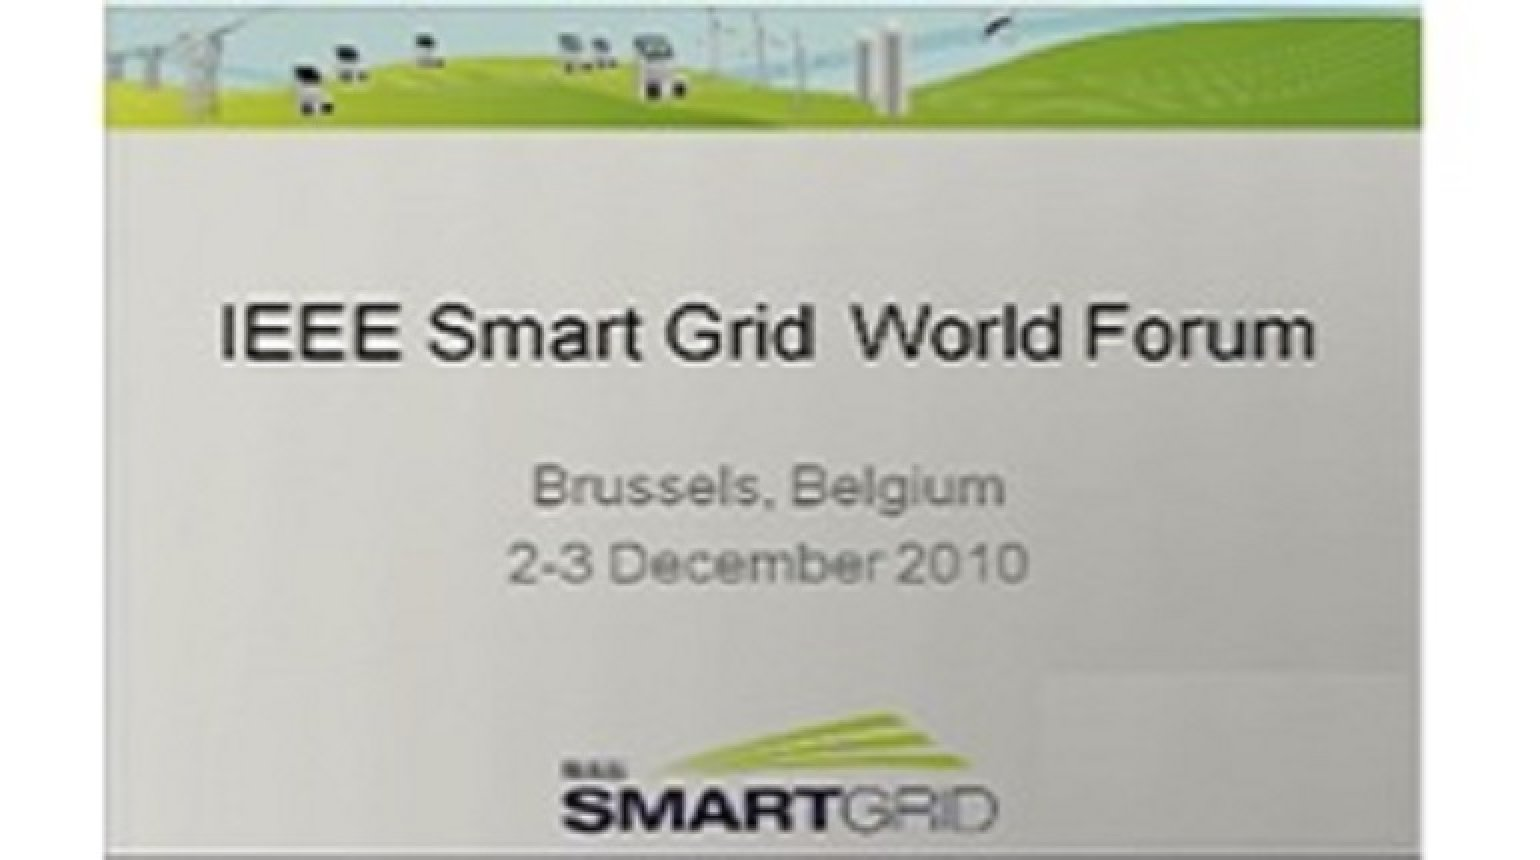 IEEE Smart Grid World Forum - Session 8 Panel Discussion